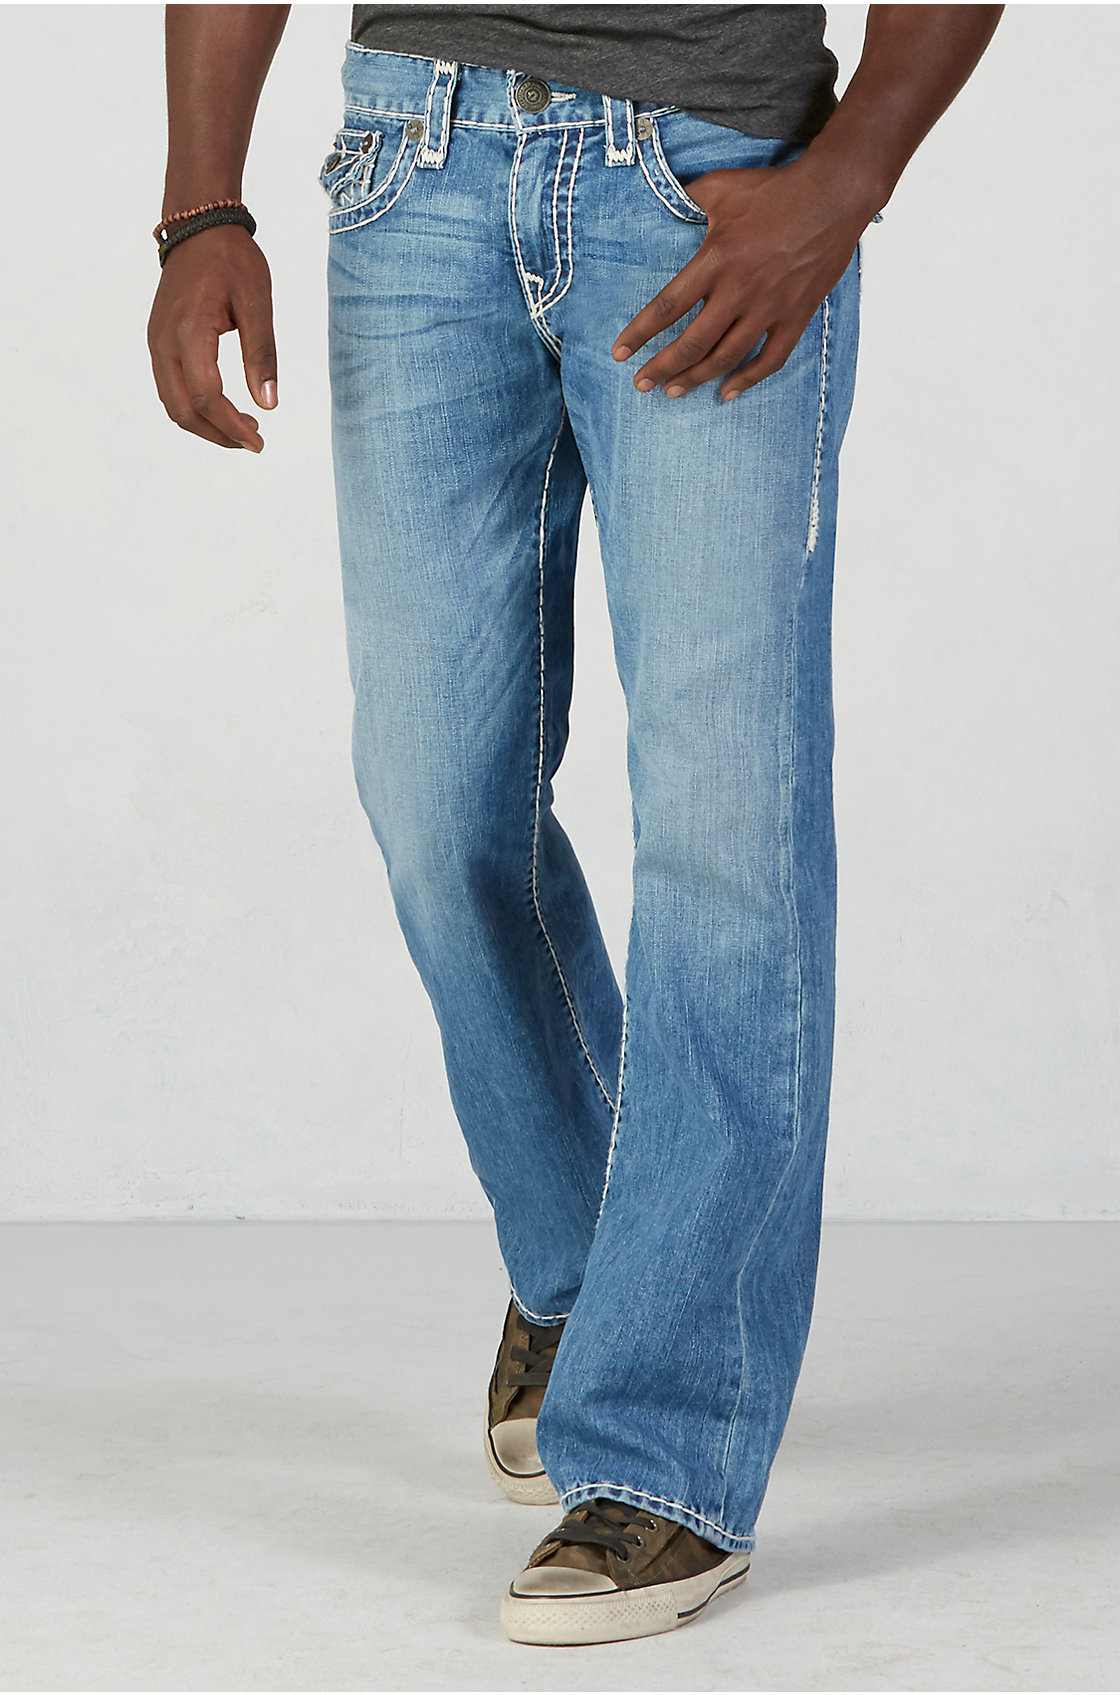 Mens Jeans With Back Pocket Flaps